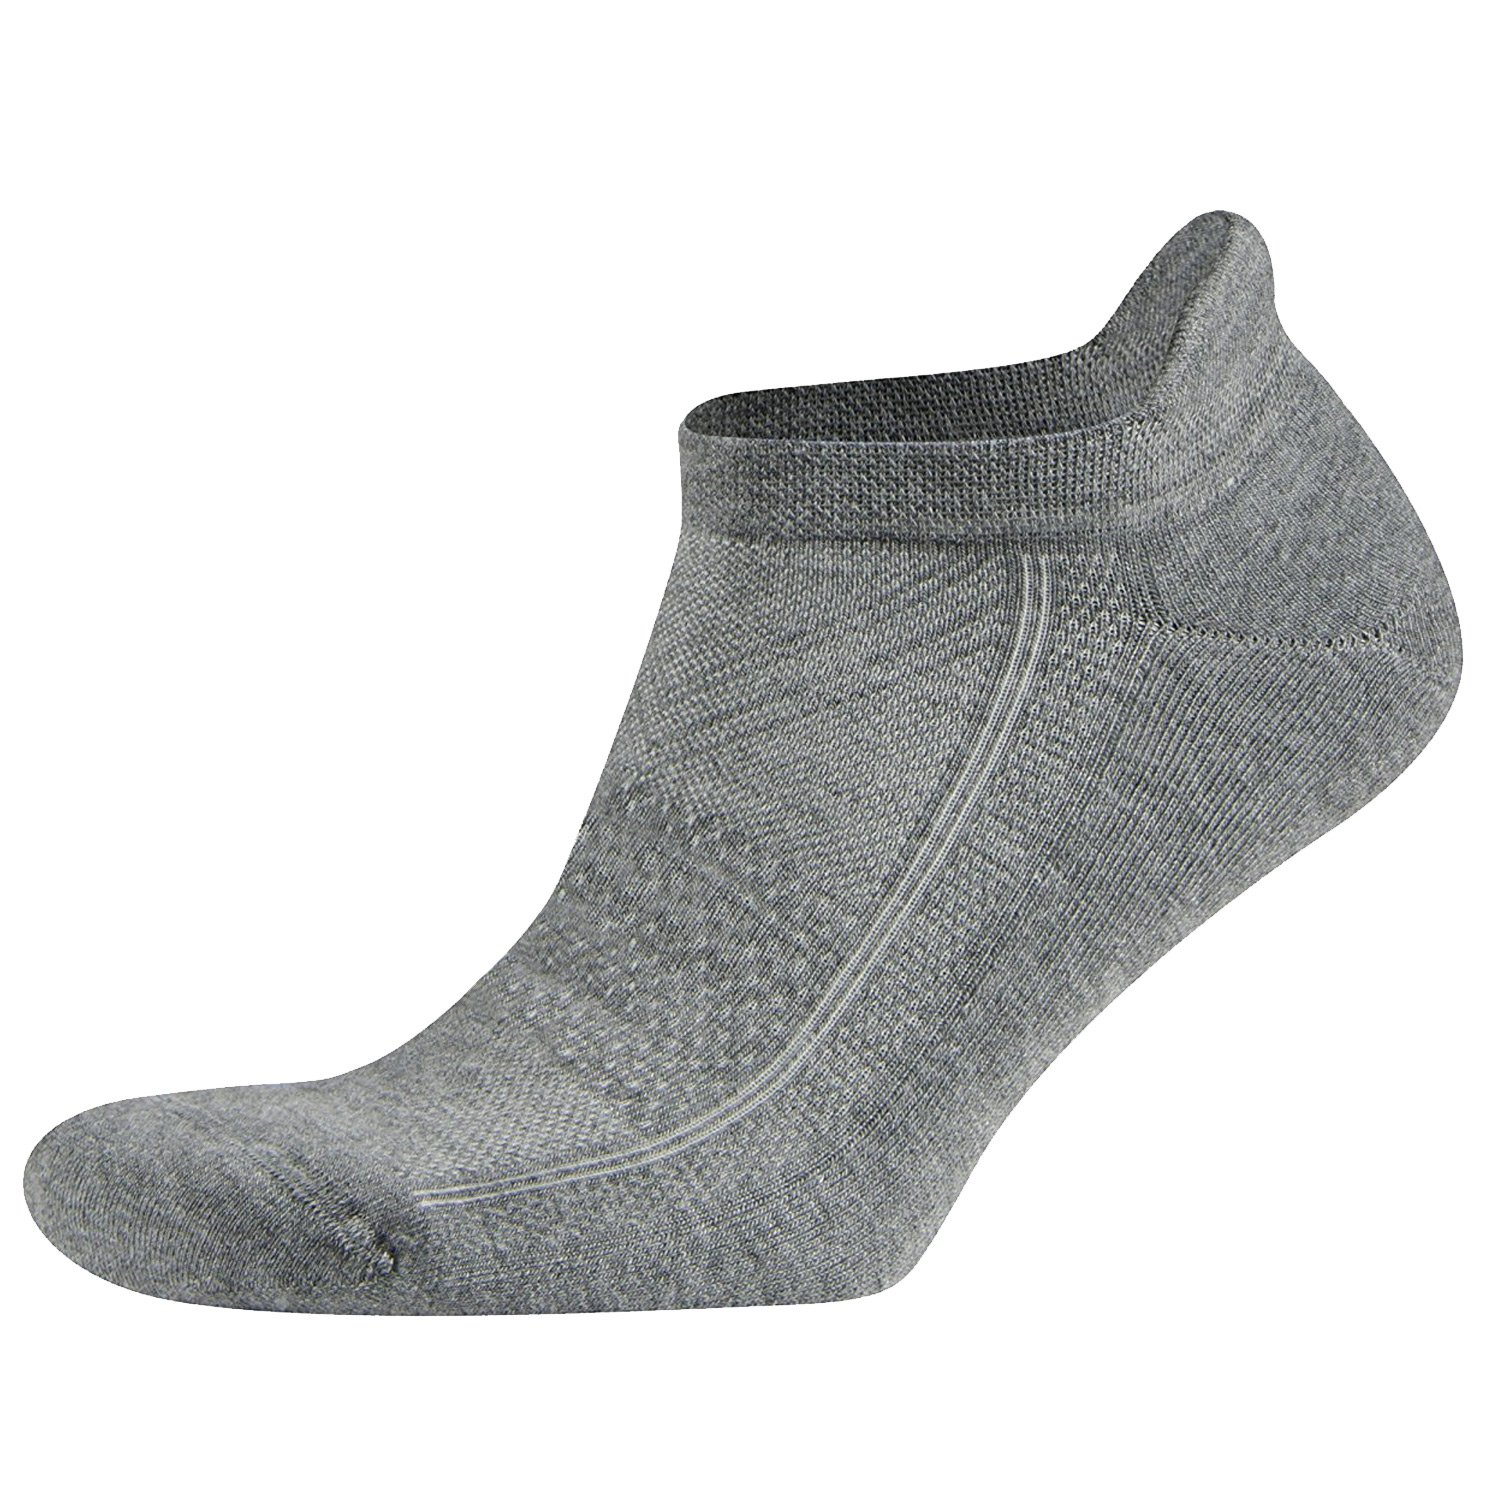 No Show Running Socks for Men and Women, 6 Pairs Comfort Hidden Low Cut Ankle Socks (L, Grey)